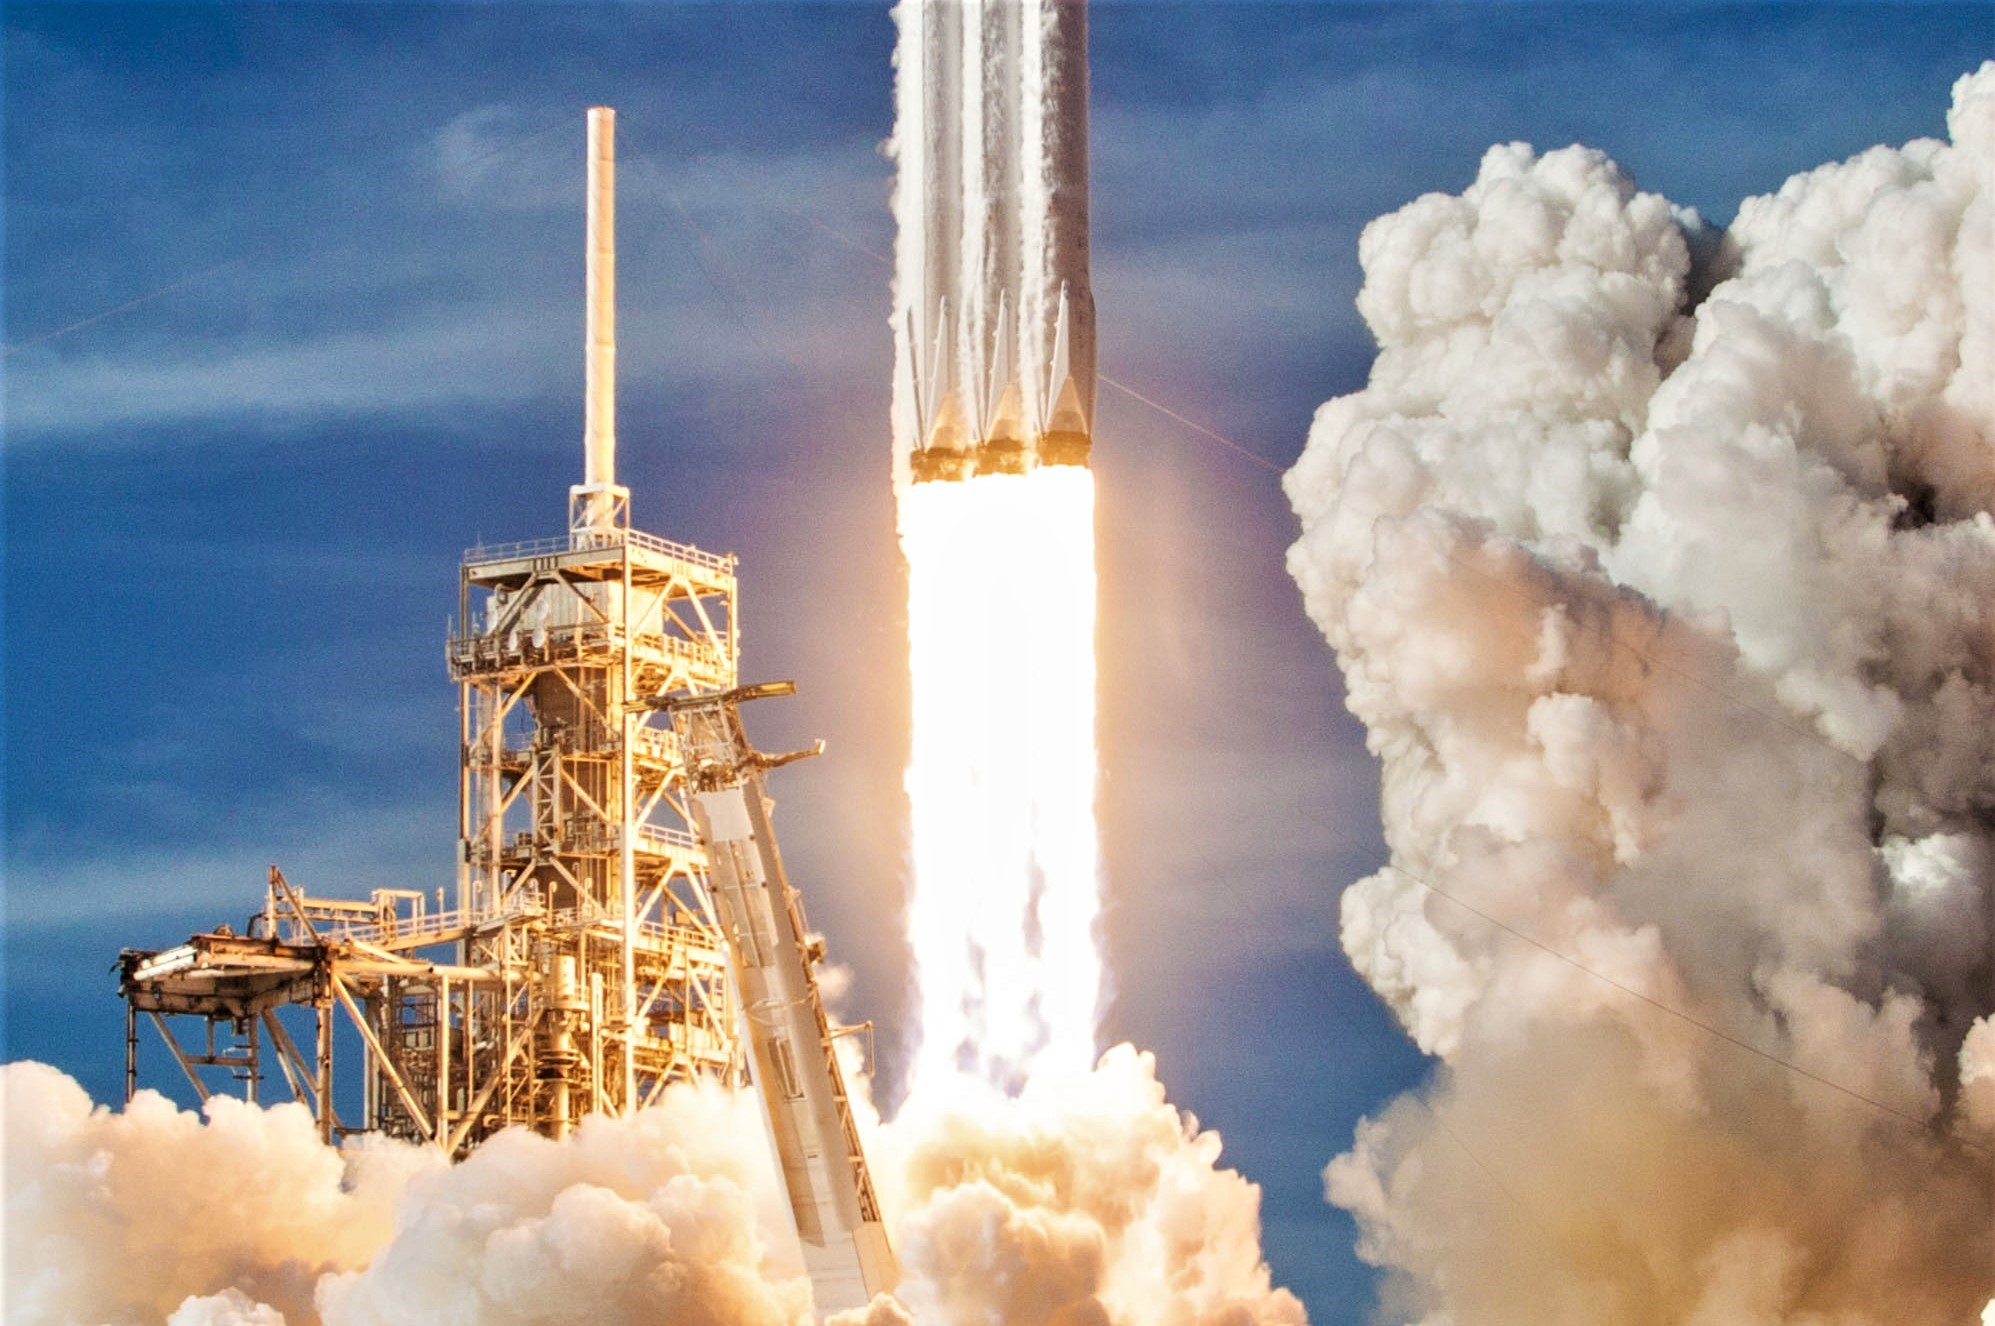 spacex wins new falcon heavy launch contract as rocket 39 s prospects stabilize. Black Bedroom Furniture Sets. Home Design Ideas